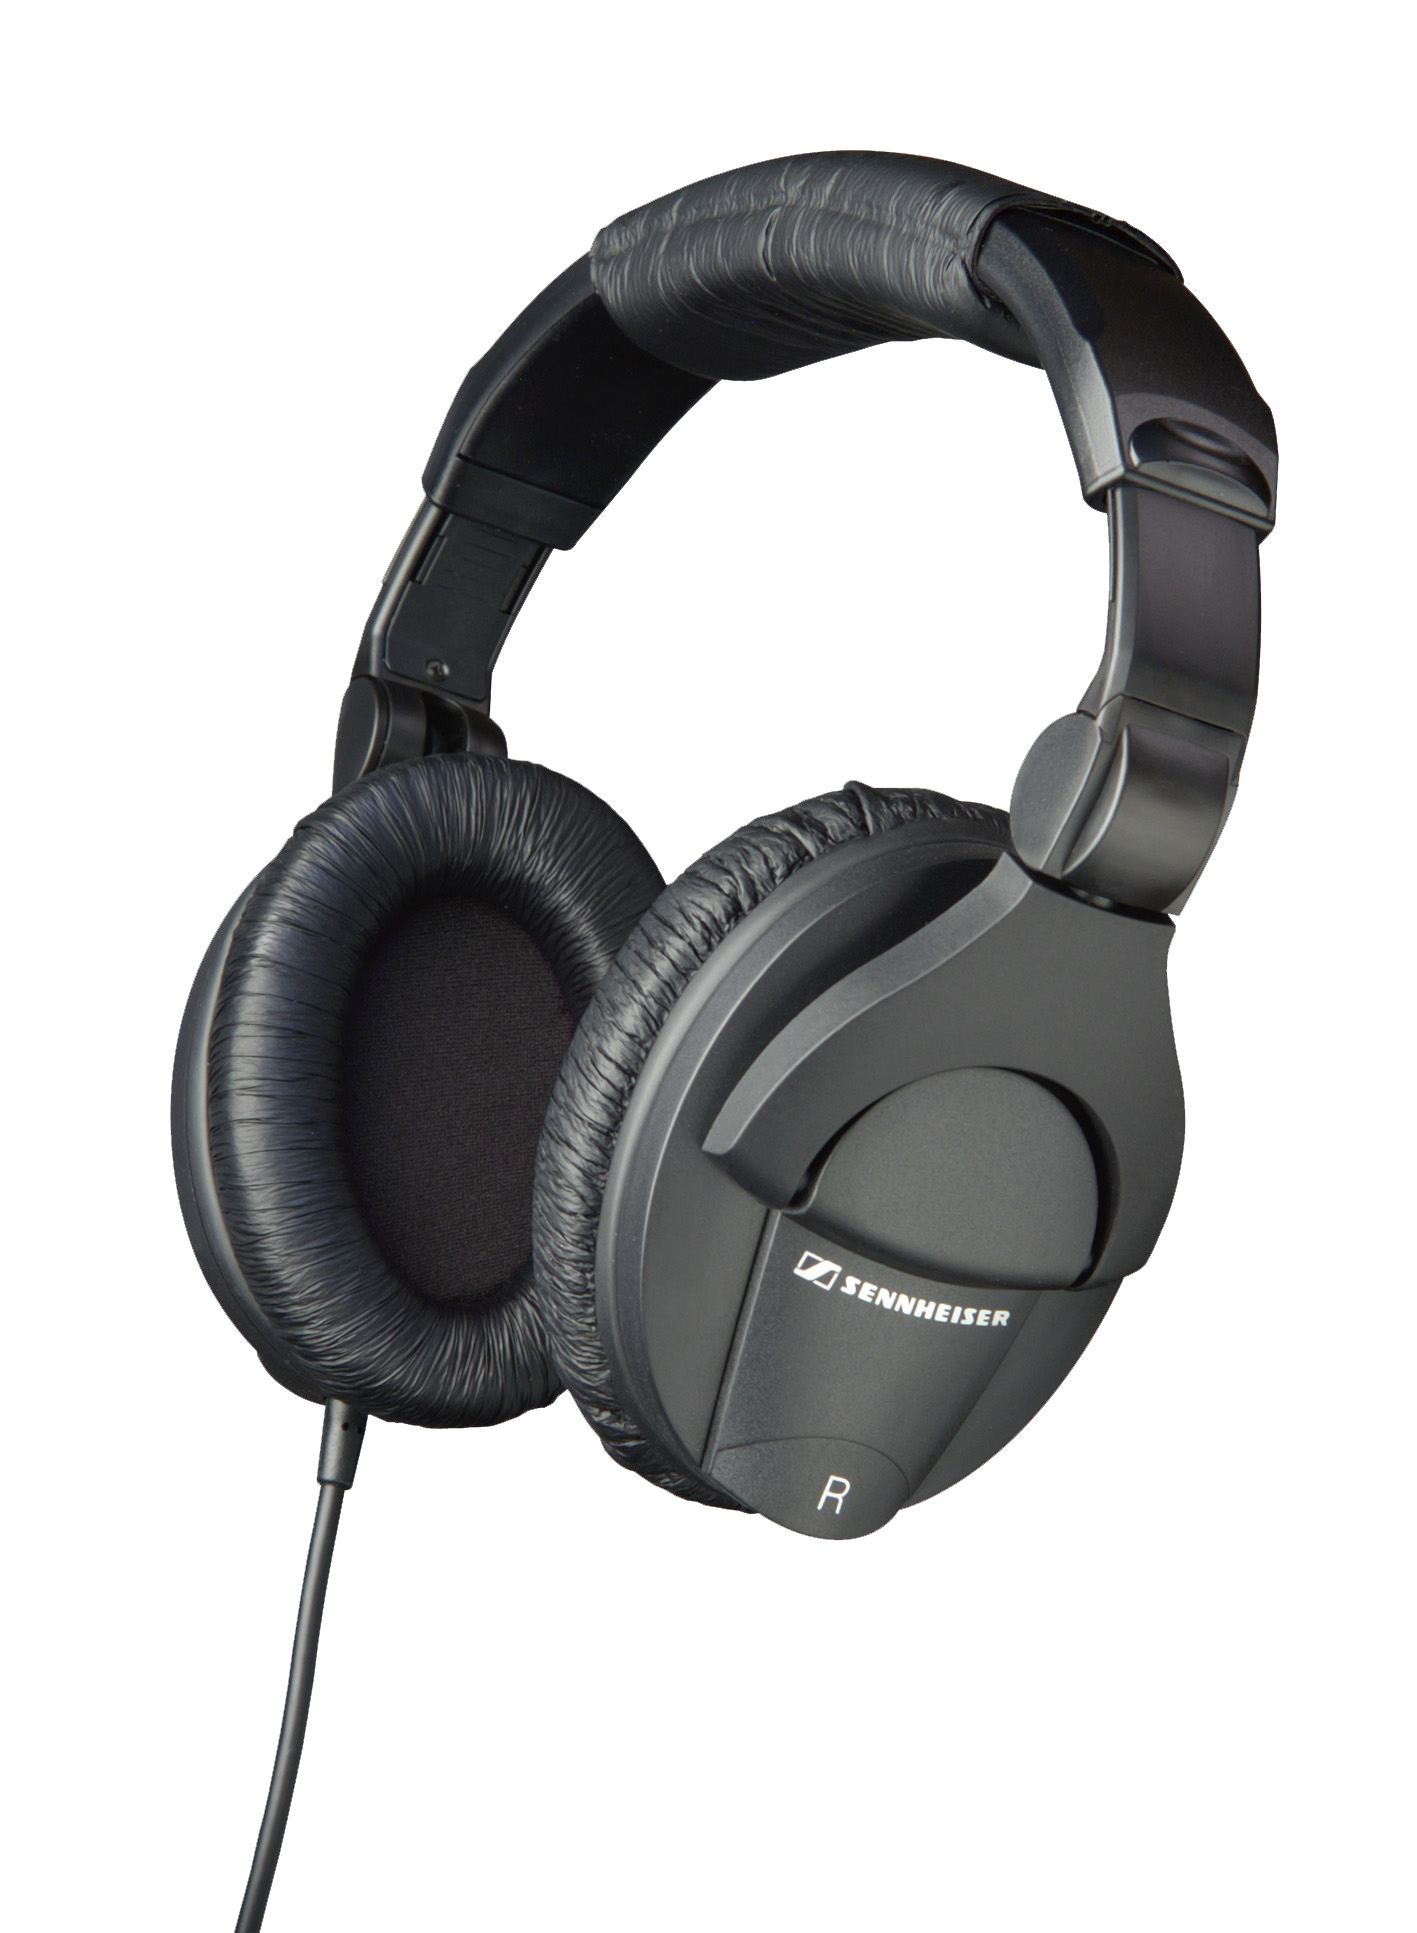 sennheiser hd 280 pro zwart prijzen tweakers. Black Bedroom Furniture Sets. Home Design Ideas